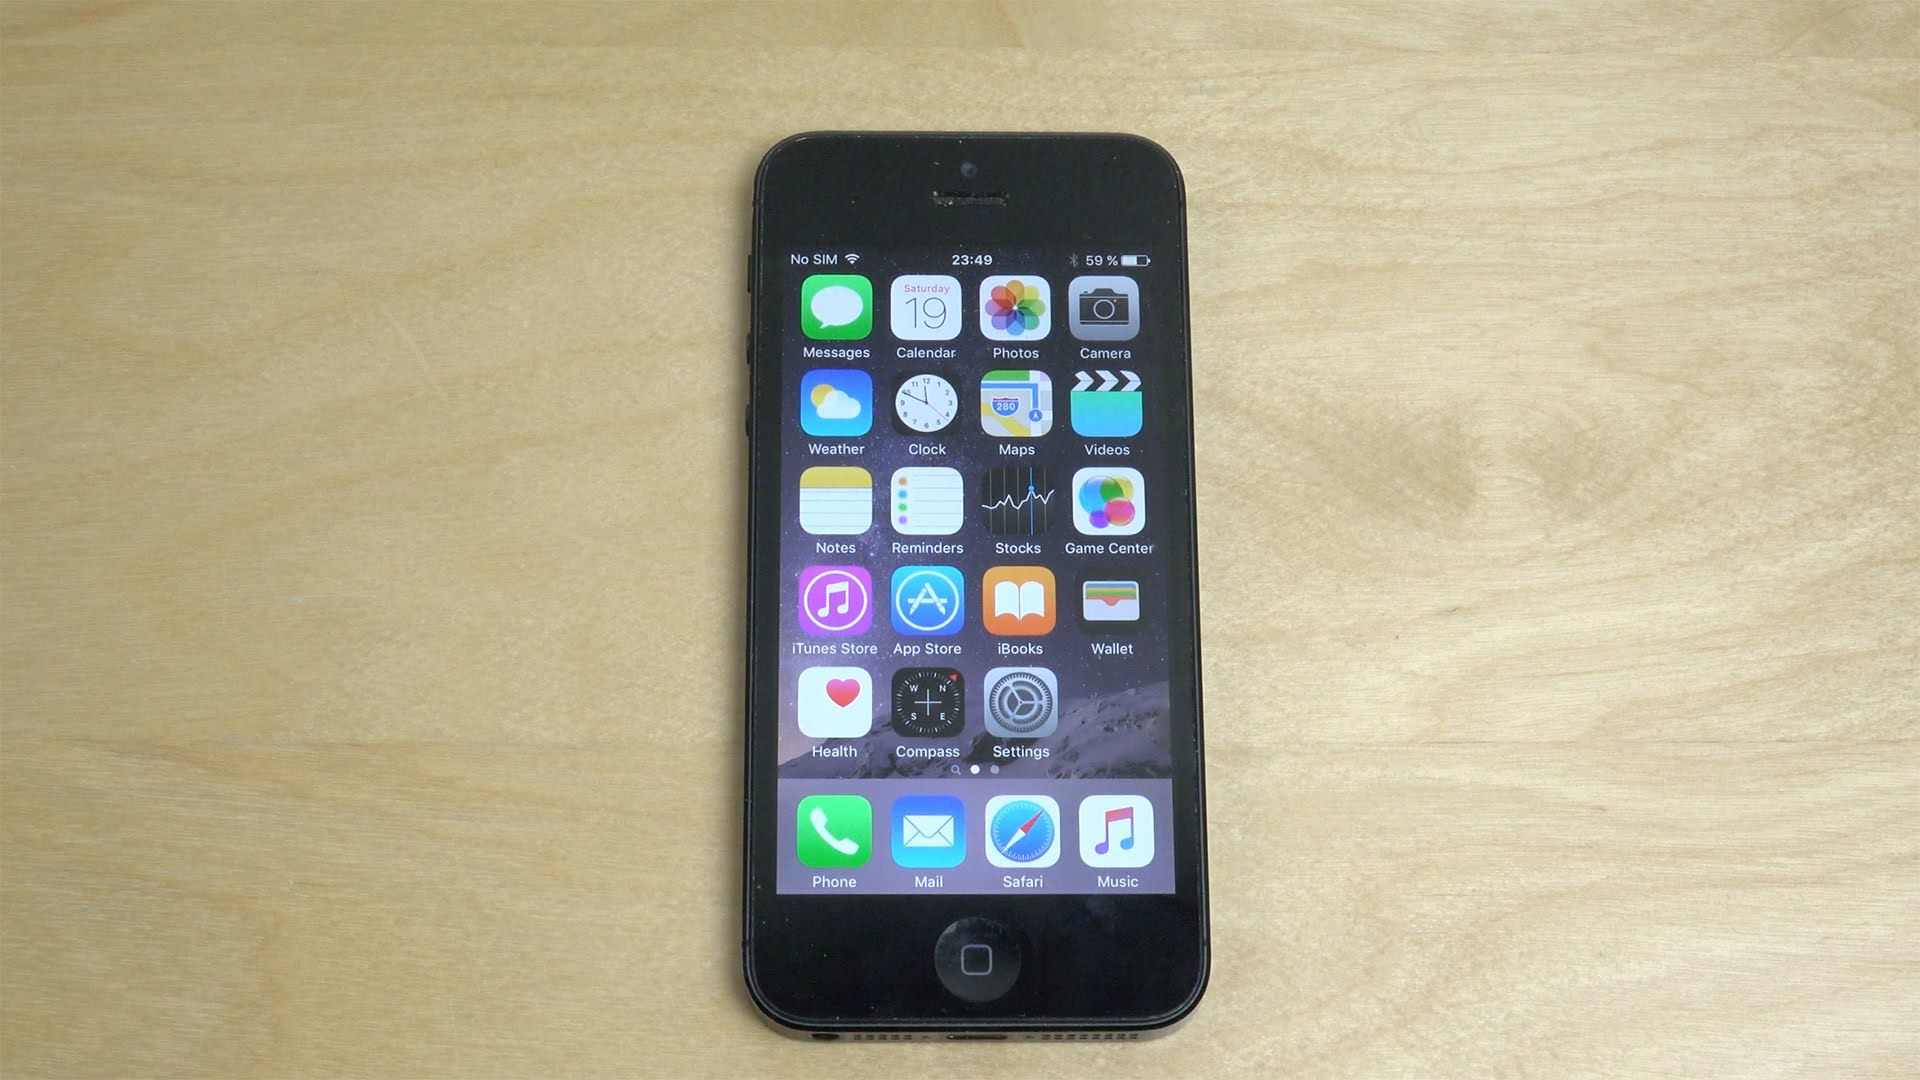 Can I update iPhone 5 to iOS 9?